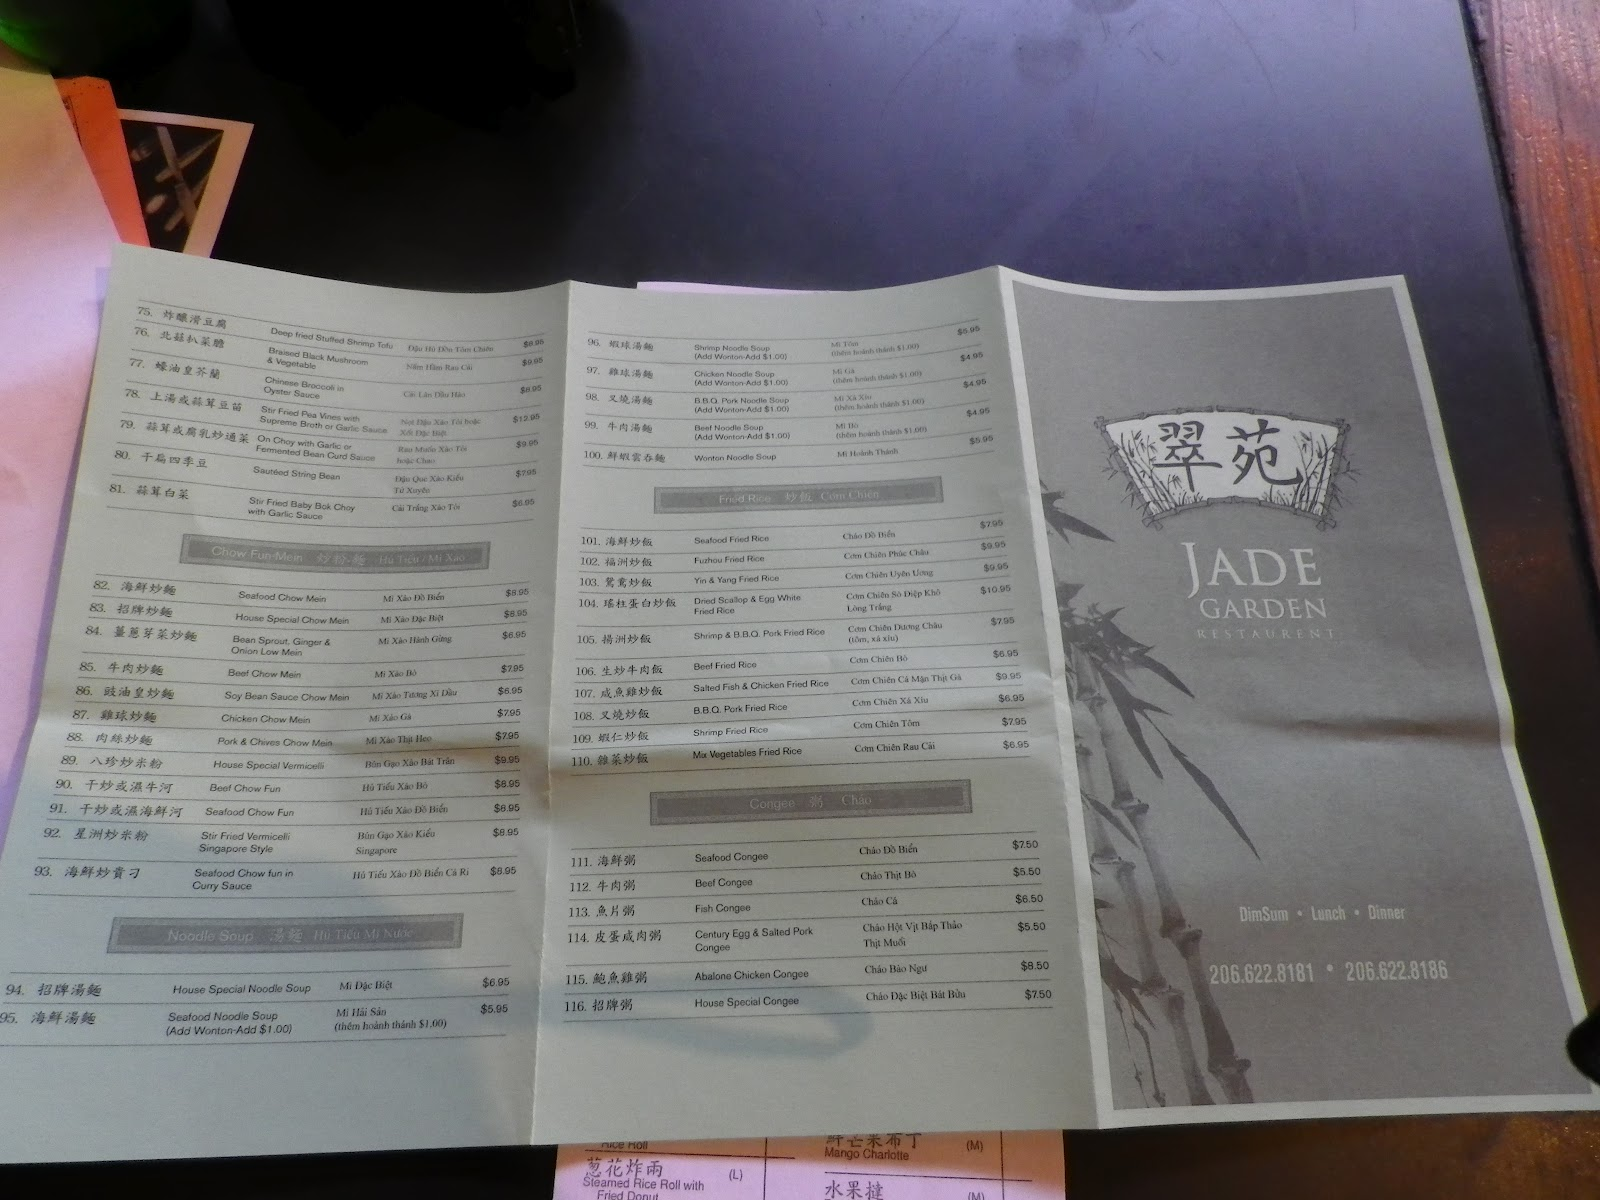 jade garden seattle menu 424 7th avenue south seattle wa 98104 - Jade Garden Seattle